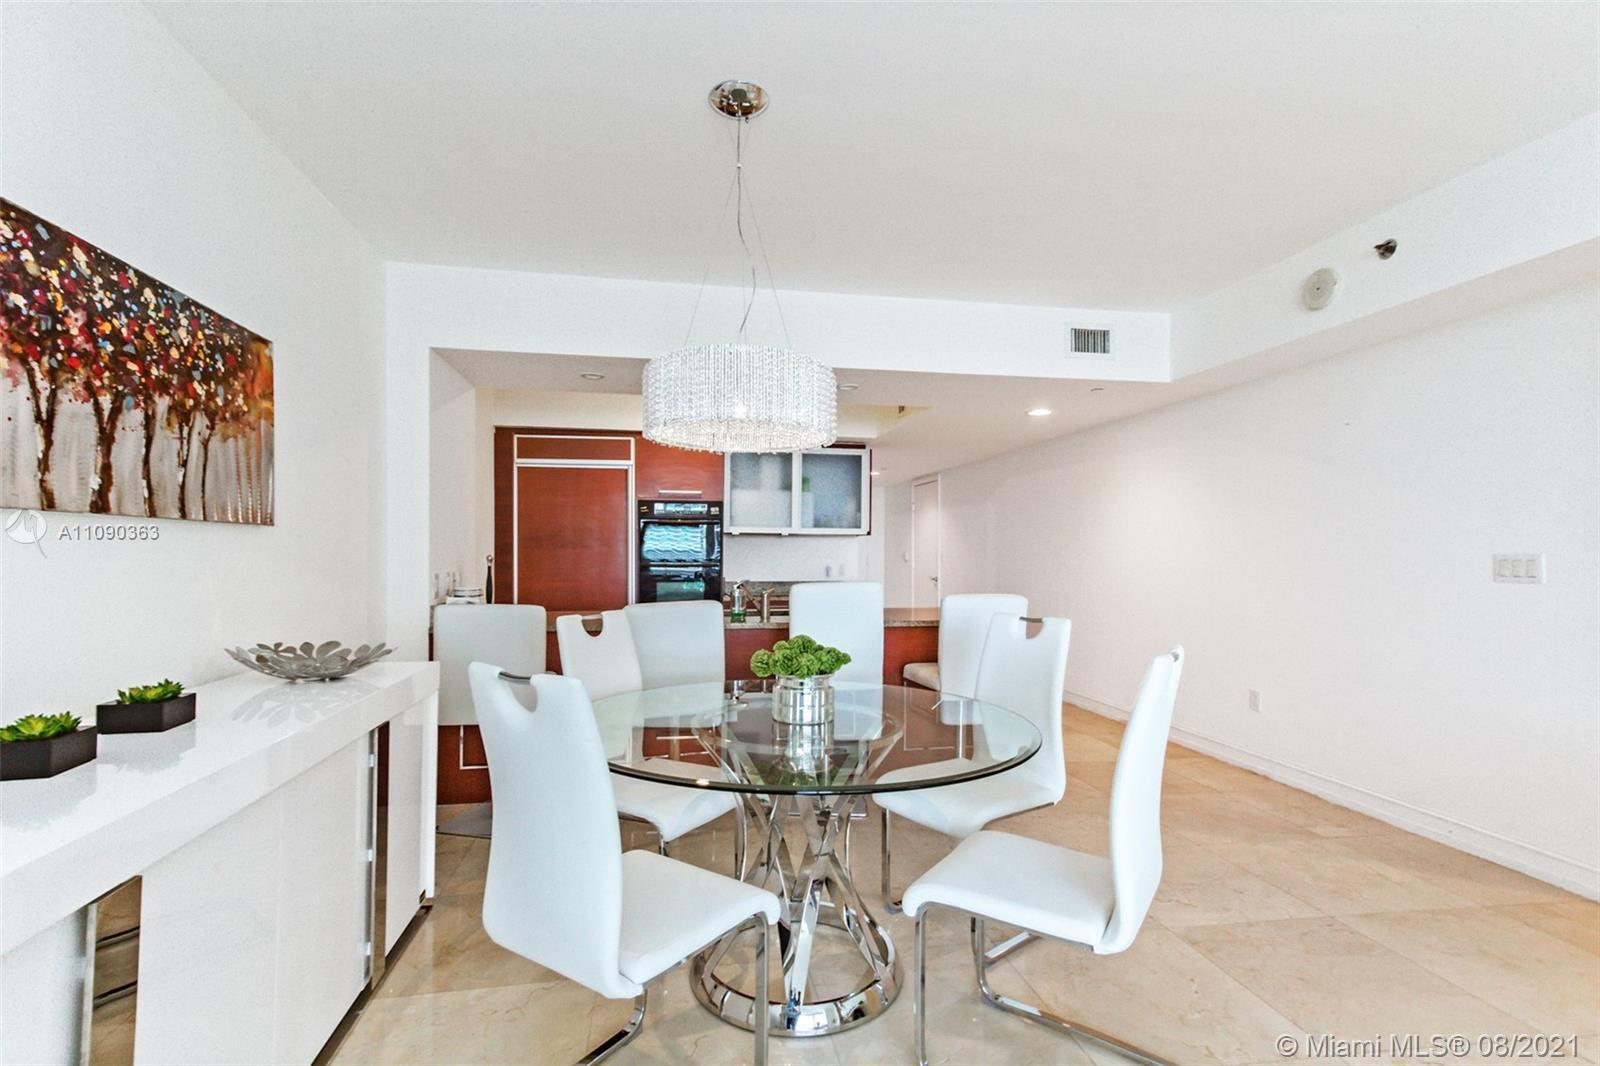 This 3 bedroom/2 bath on a high floor has a fresh and clean modern design. Easy to relax in this spa